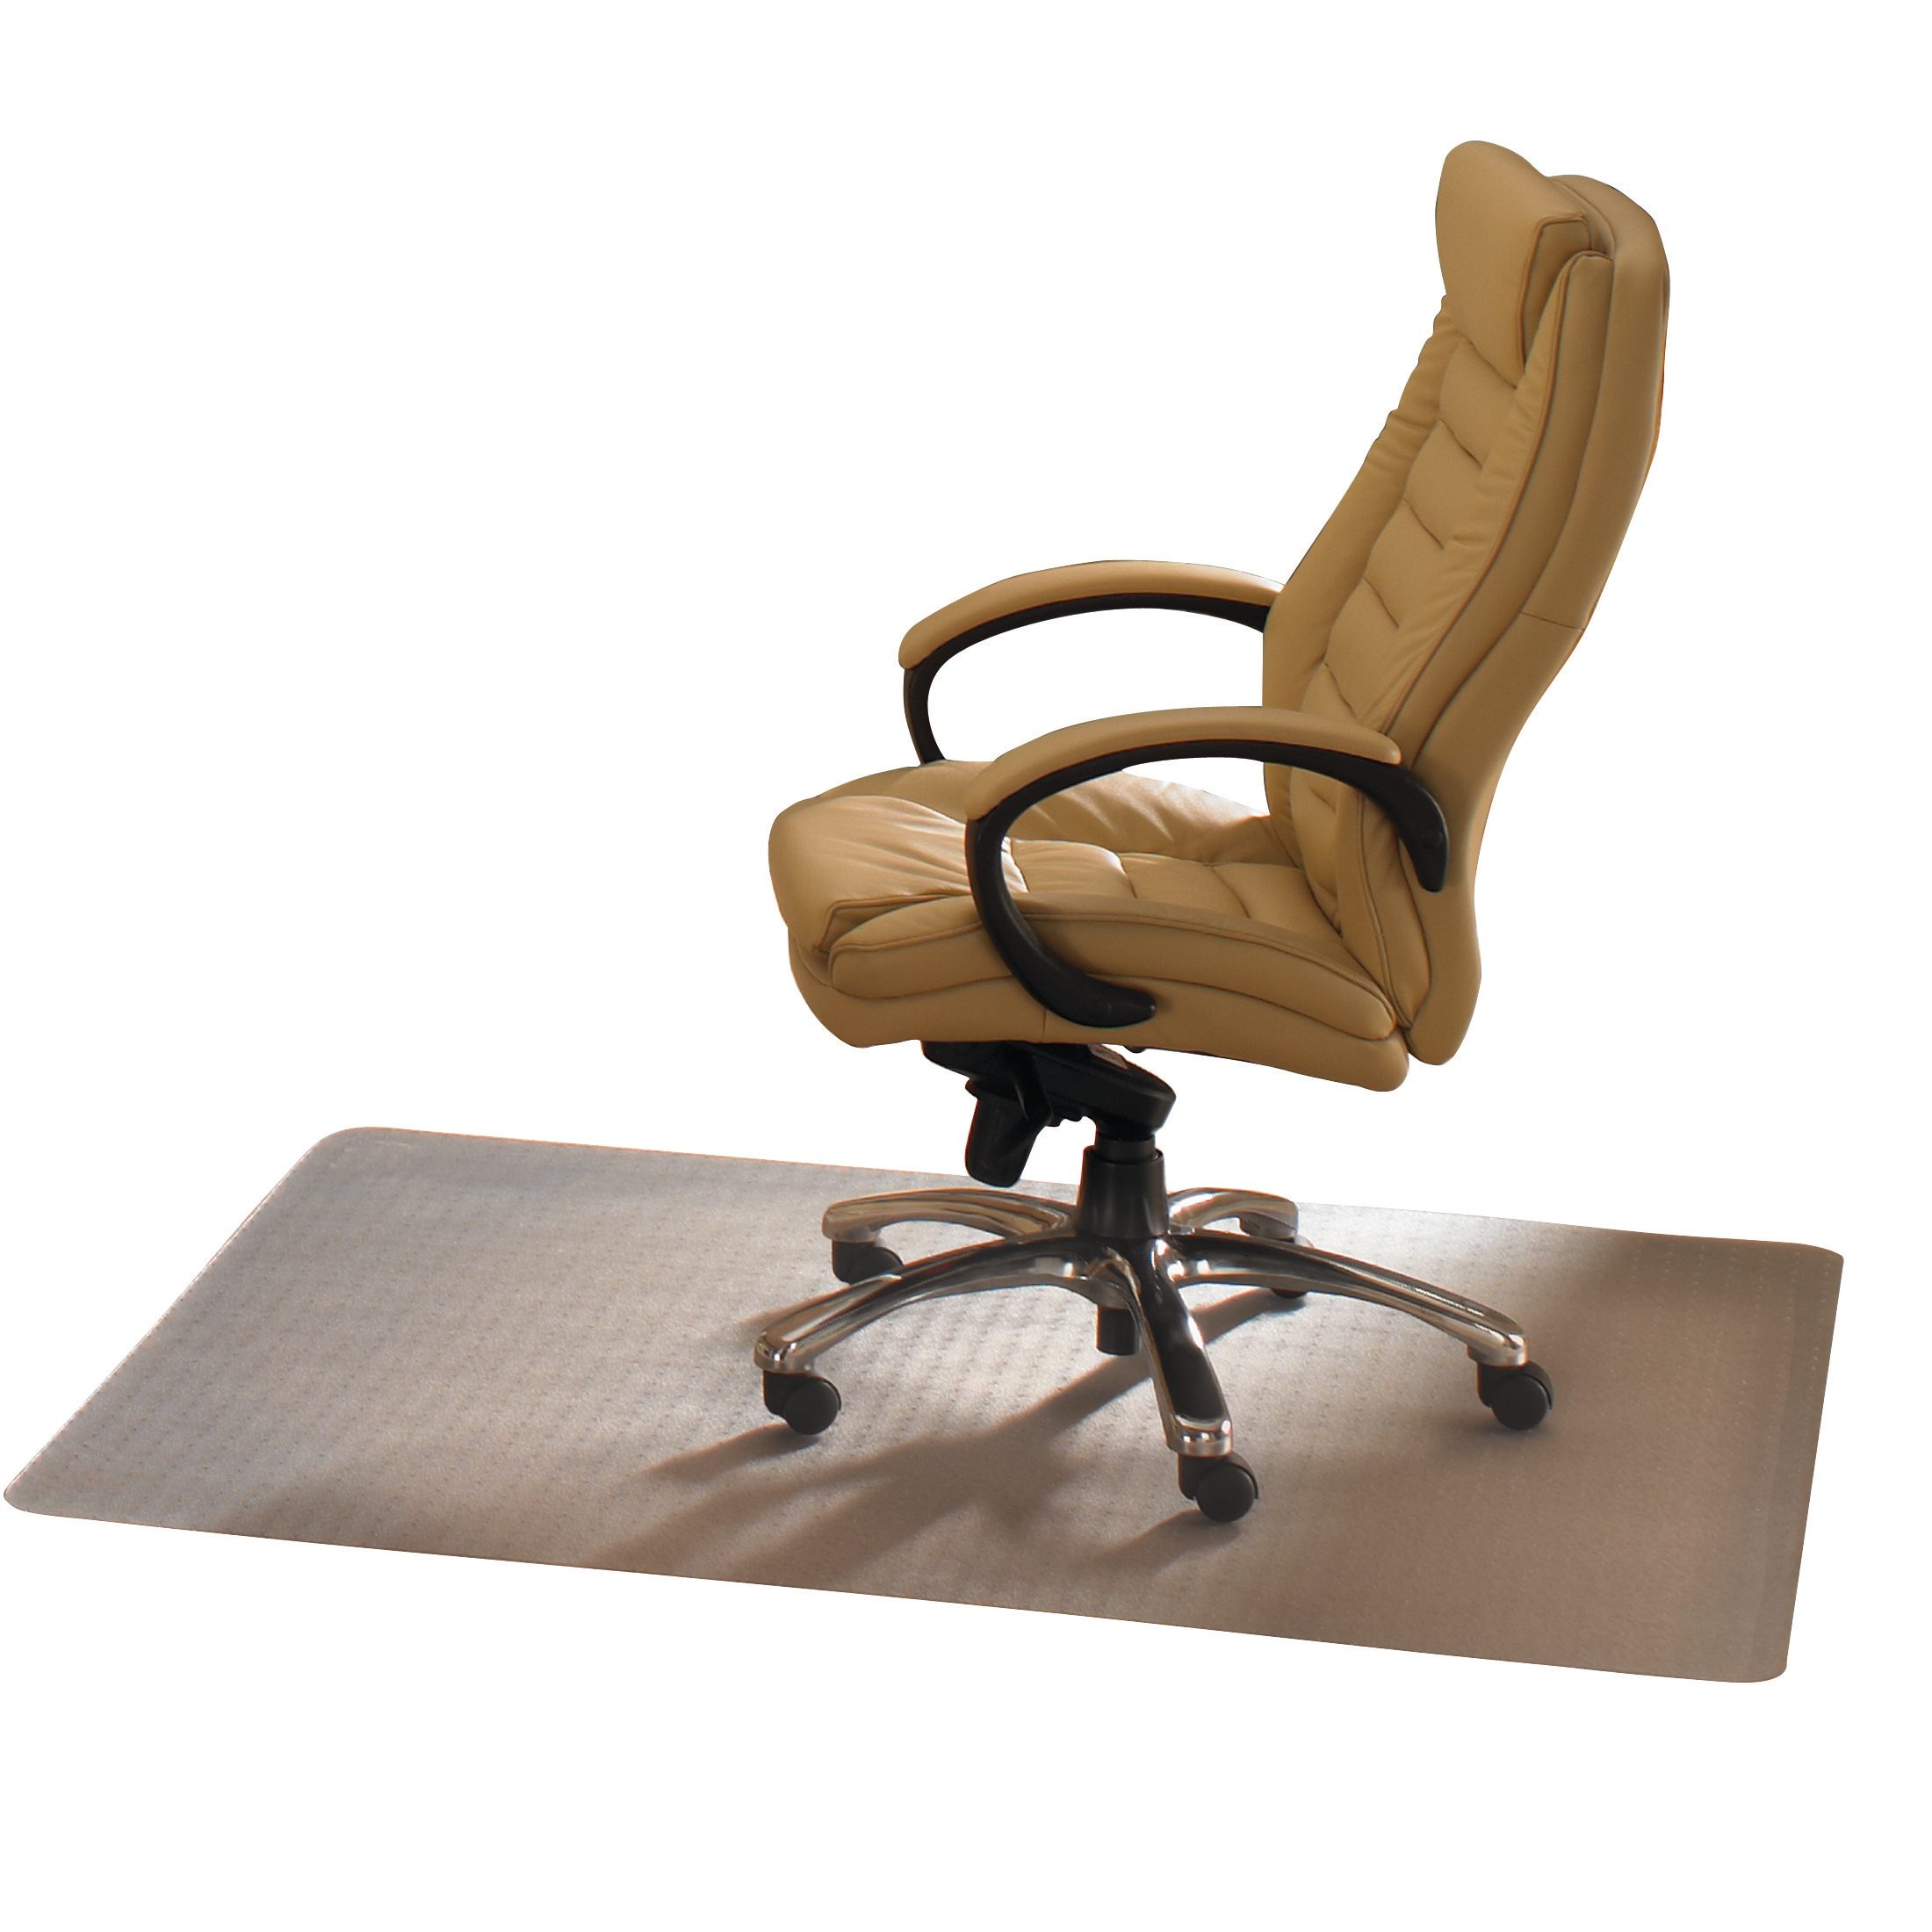 Image for Cleartex Advantagemat Chair Mat For Carpet Protection 1200x900mm Clear Ref FCPF119225EV